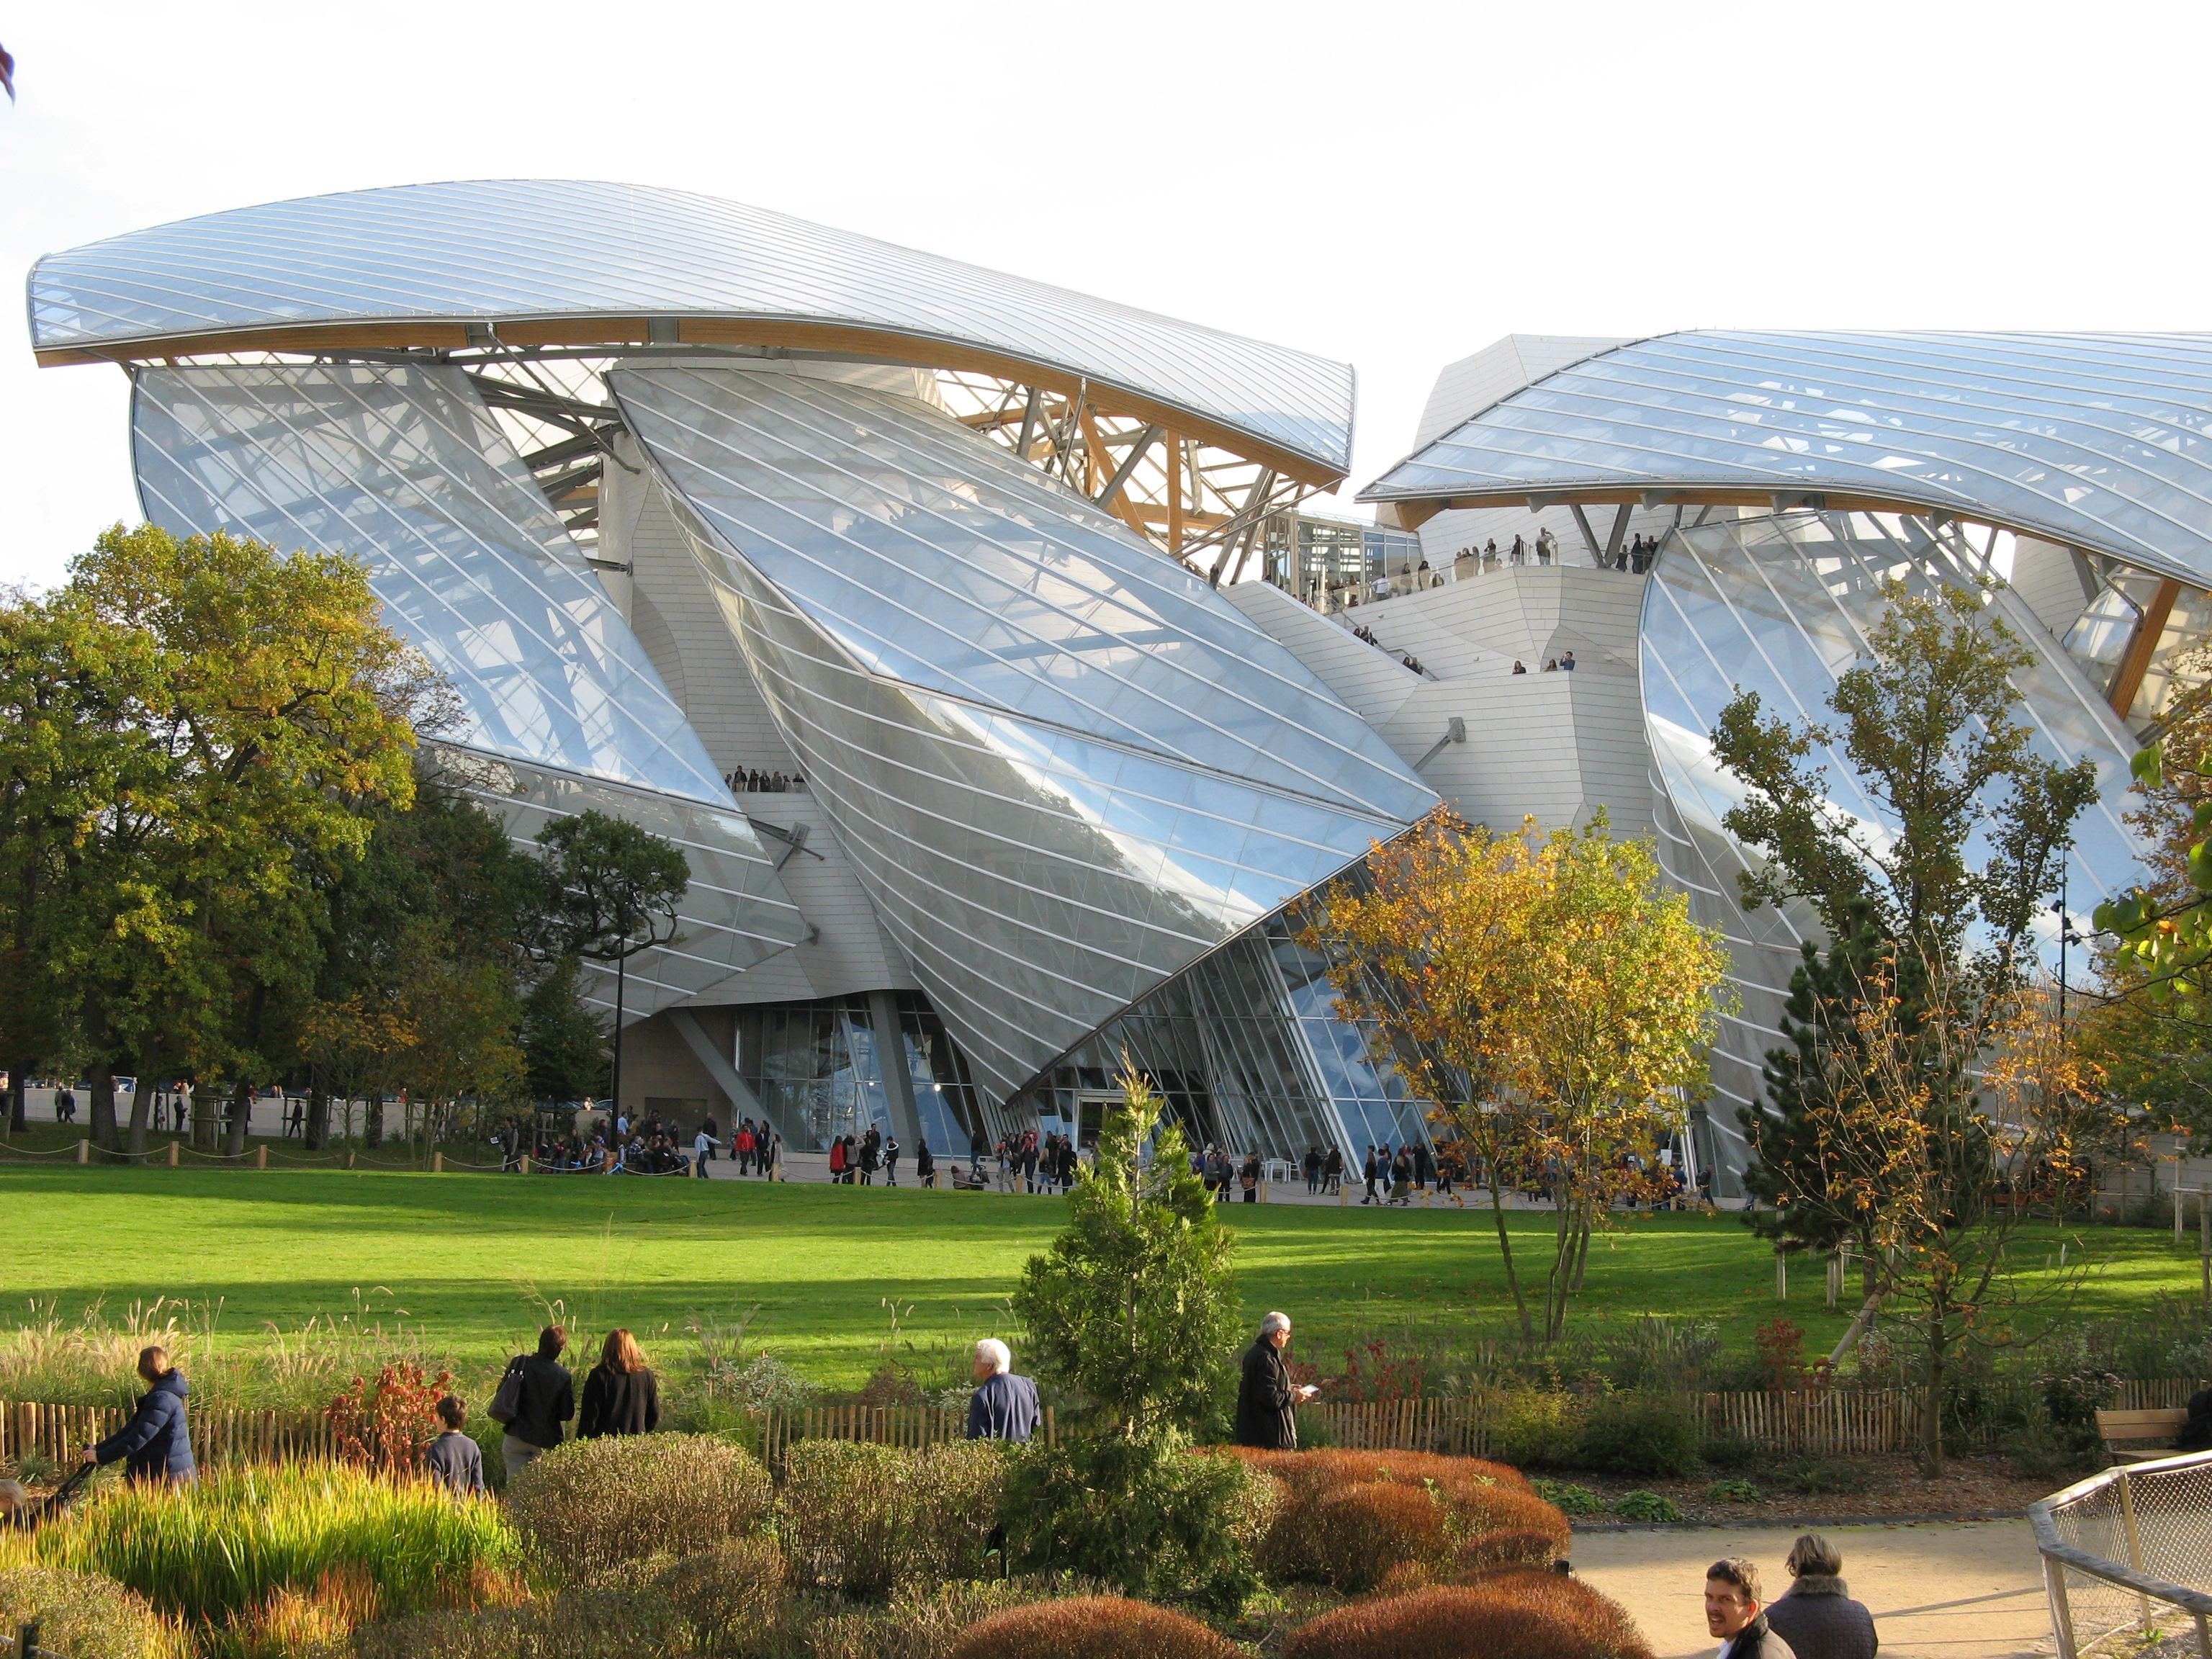 Fondation Louis Vuitton Adresse